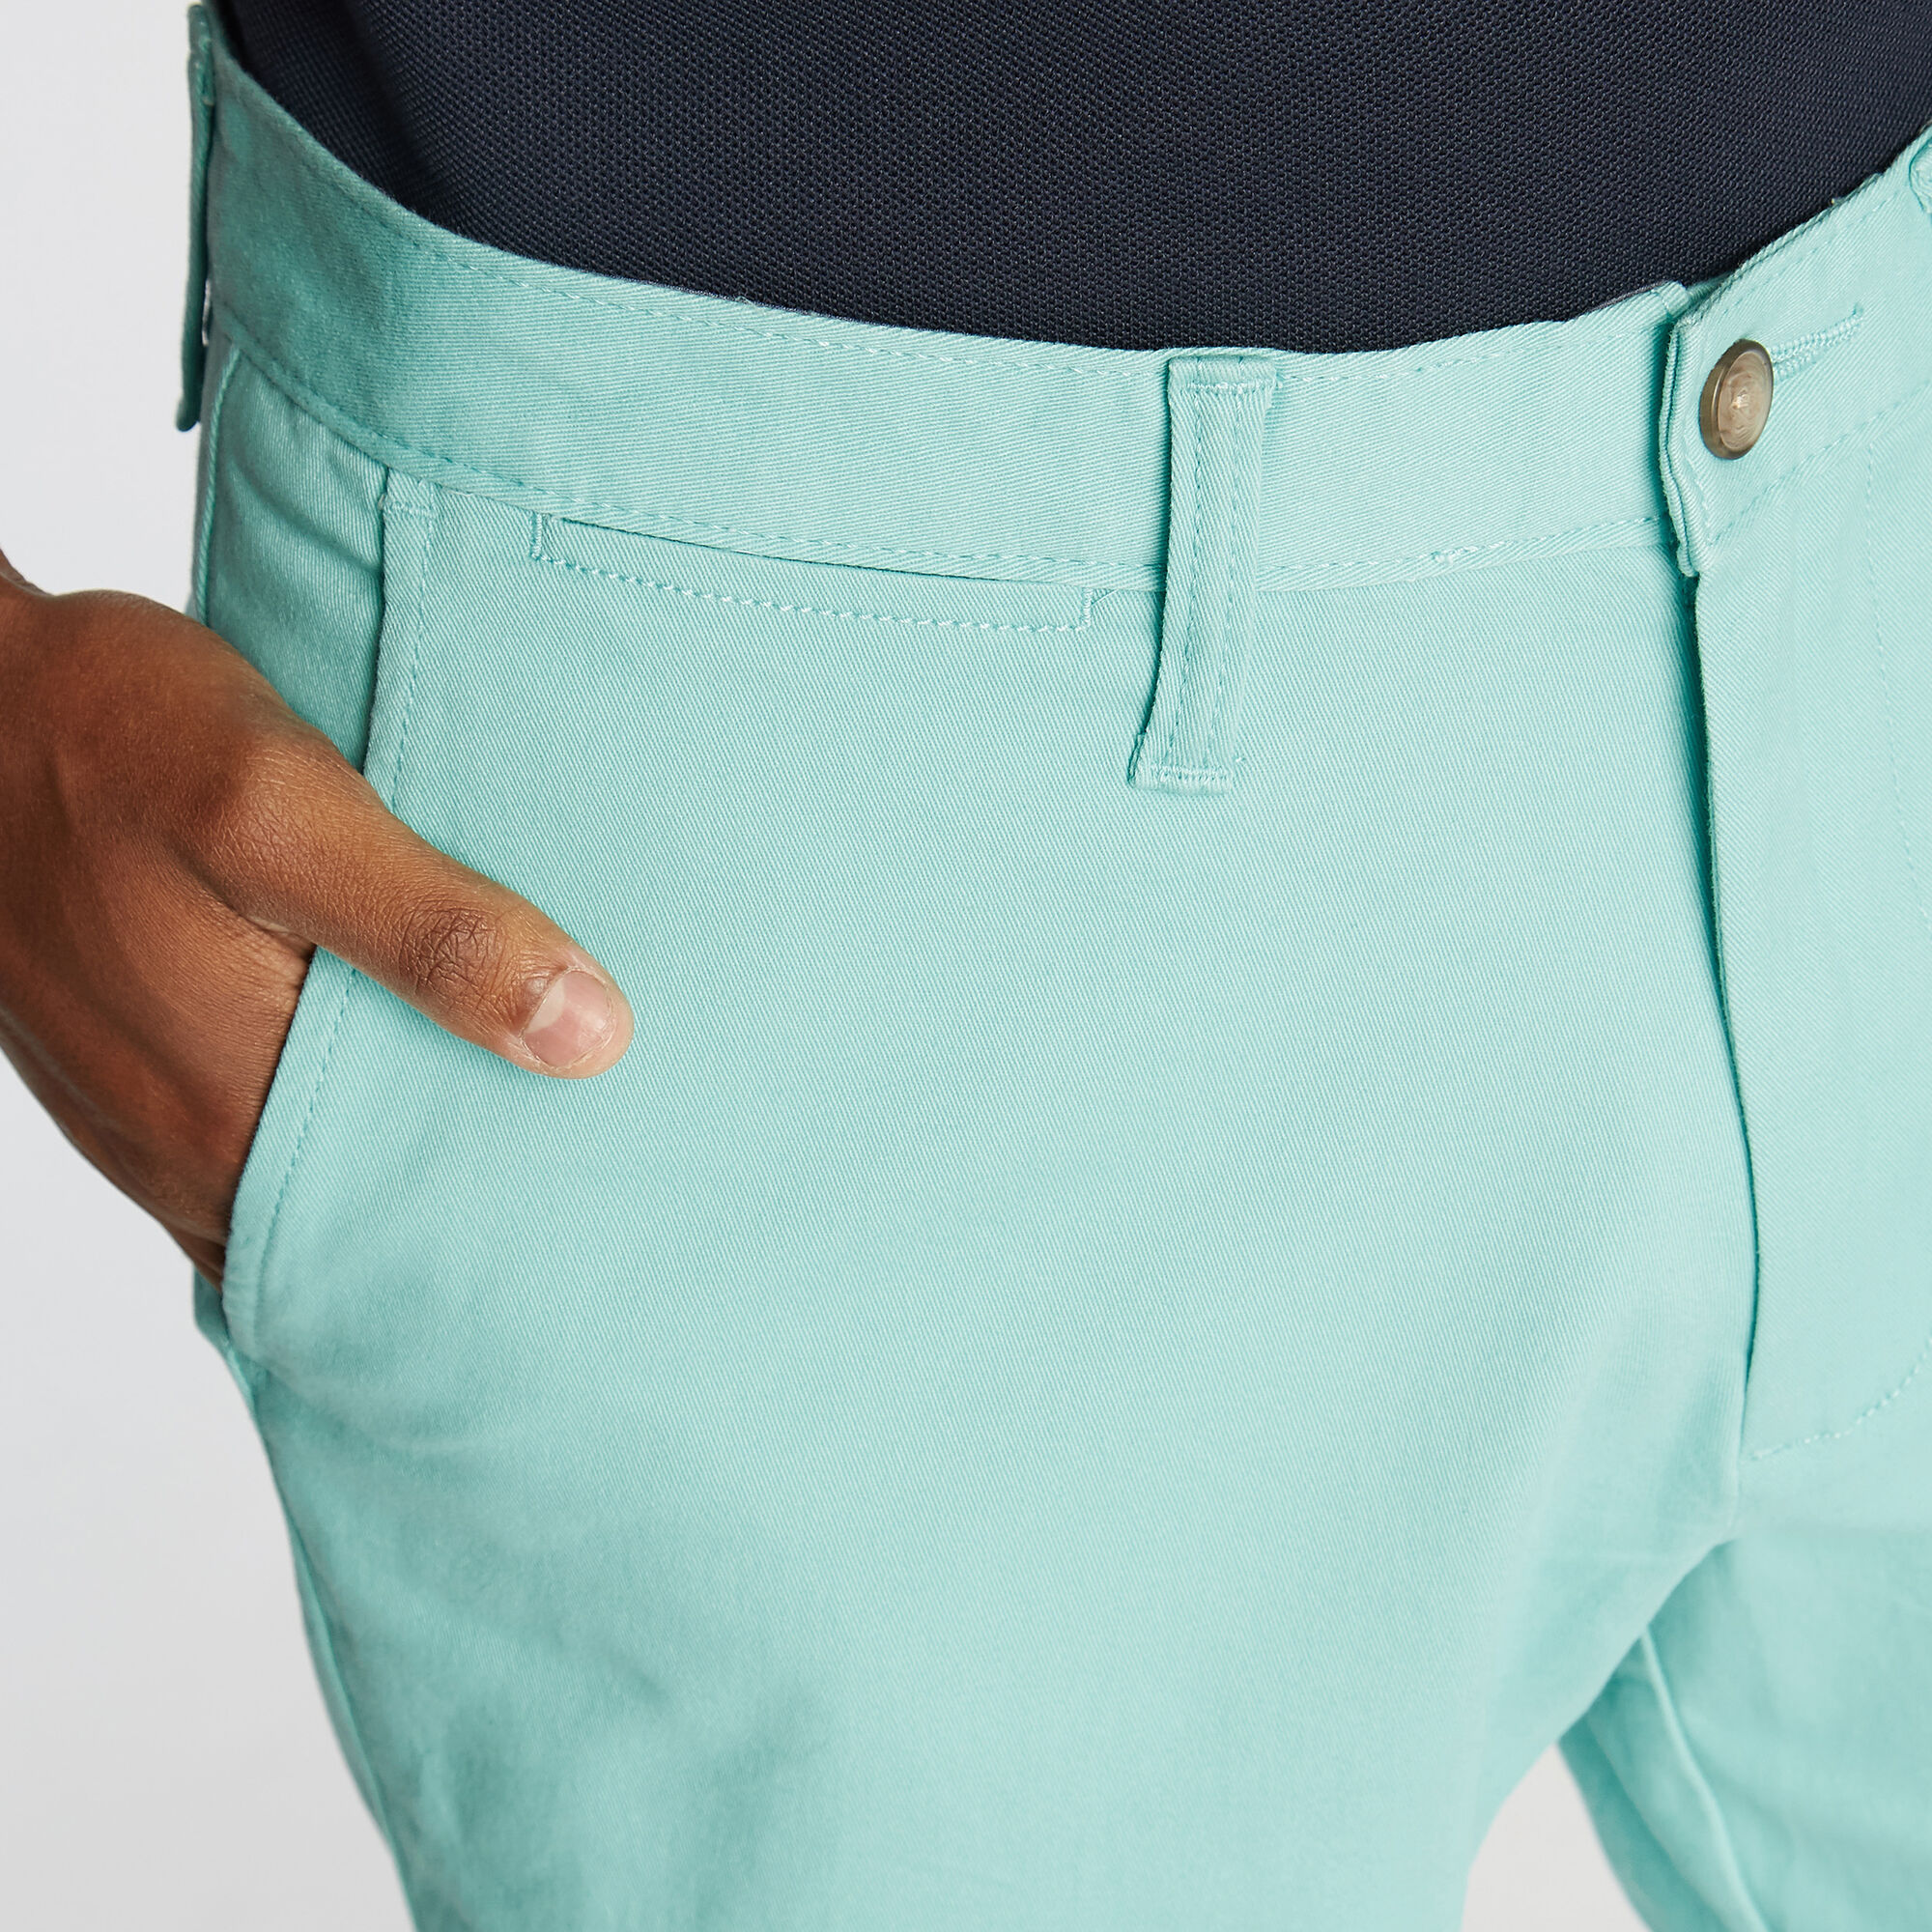 Nautica-Mens-8-5-034-Classic-Fit-Deck-Short-With-Stretch thumbnail 40